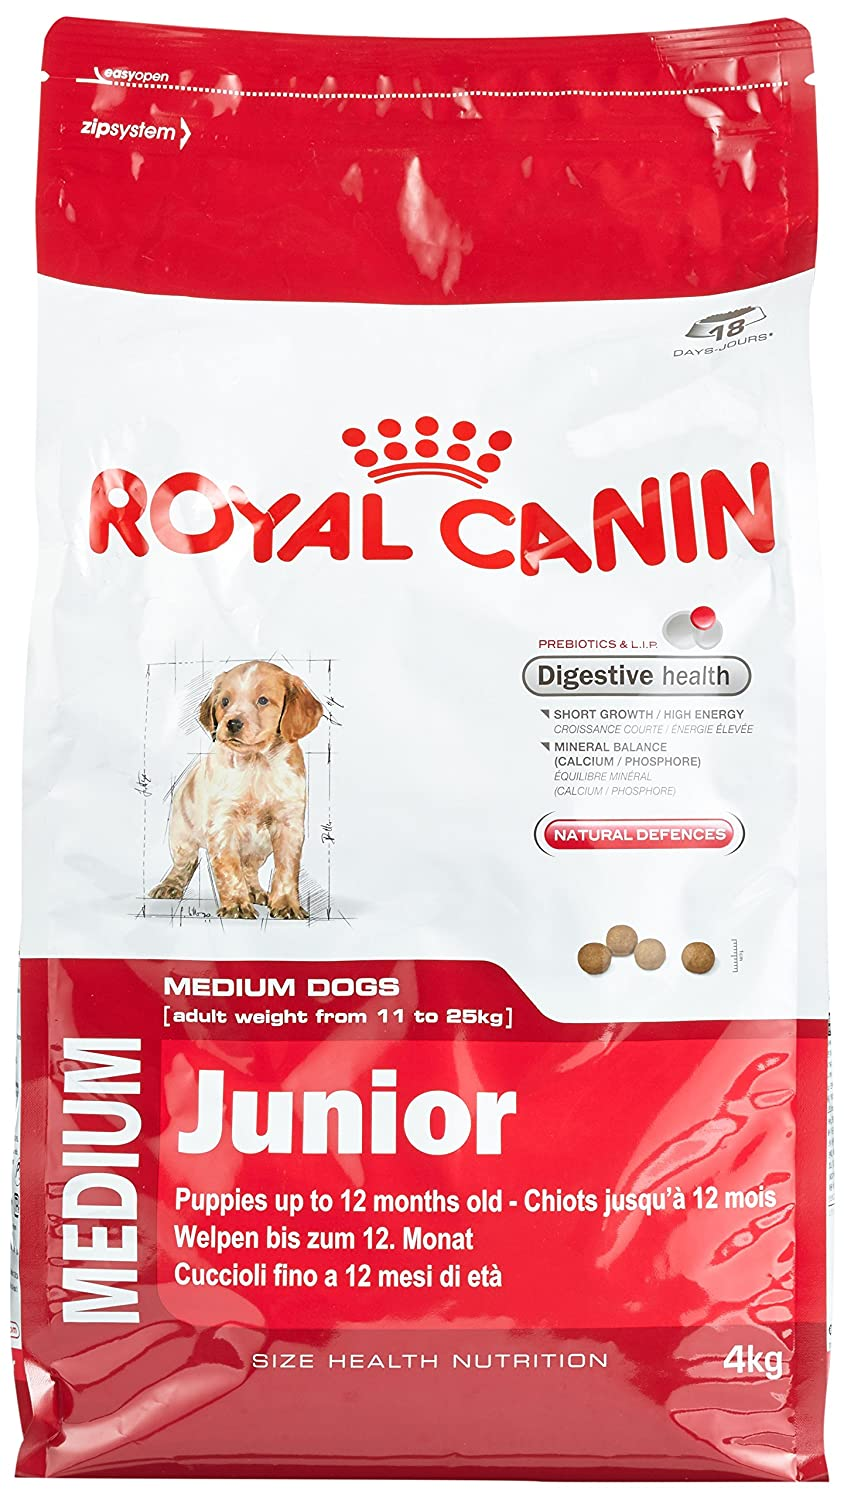 royal canin junior medium dog food diets support nutrition. Black Bedroom Furniture Sets. Home Design Ideas